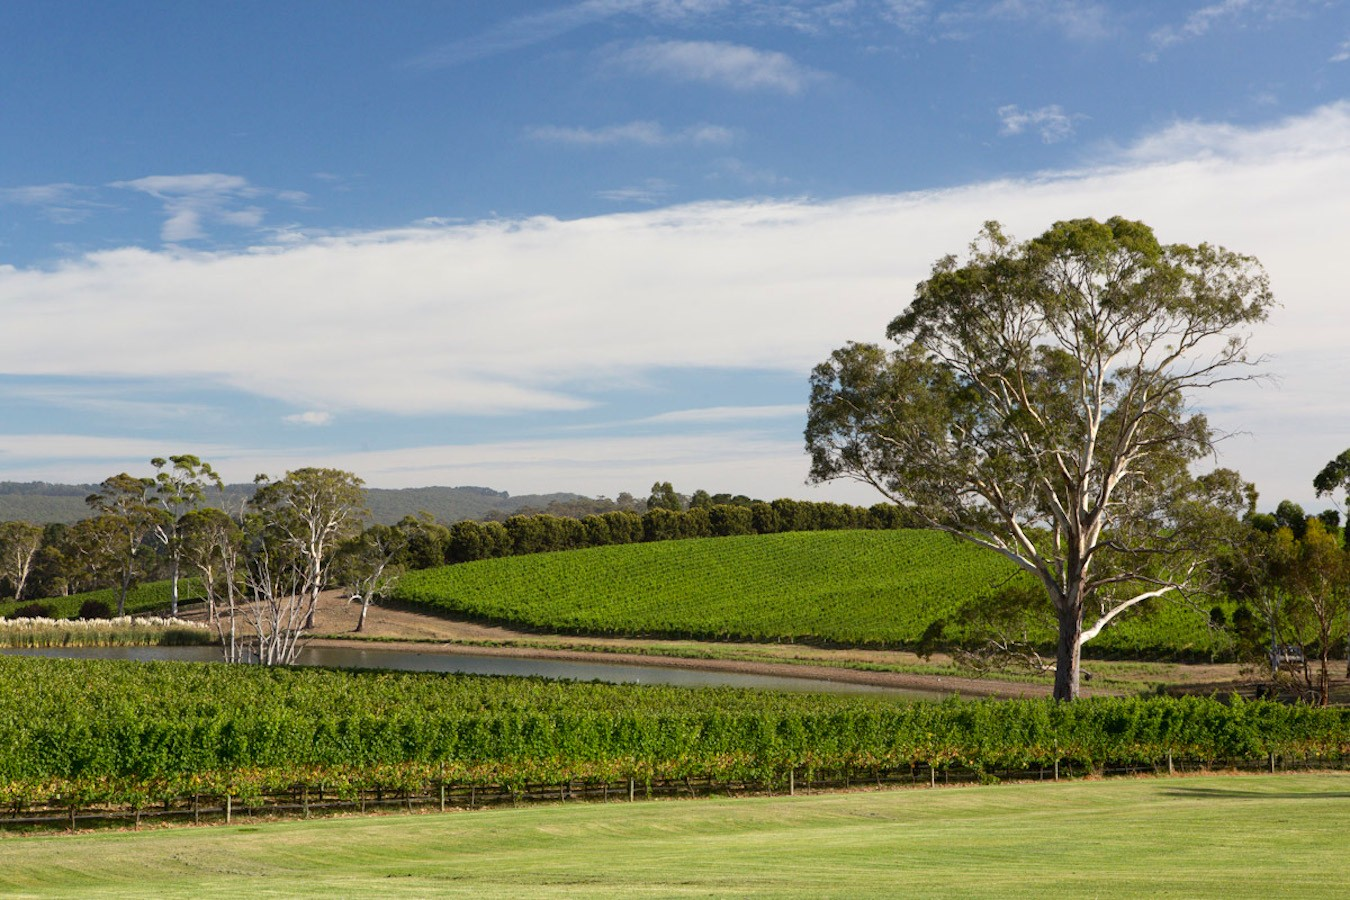 Where else but Australia? The beautiful Adelaide Hills